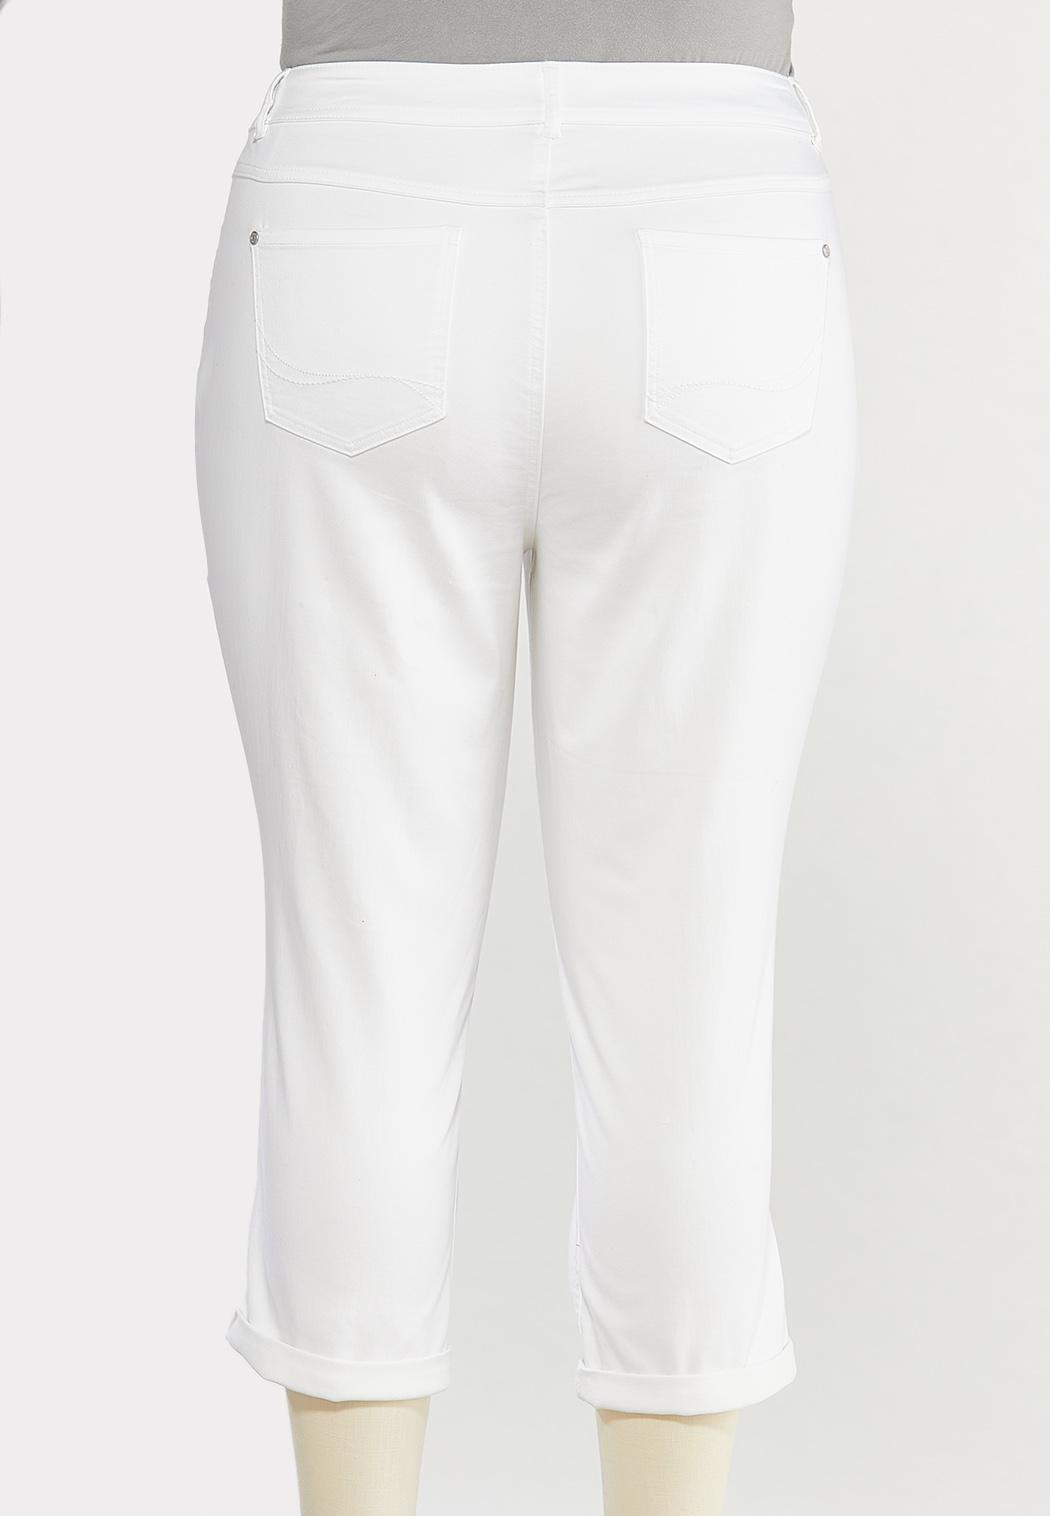 Plus Size Cropped White Jeans (Item #44480381)